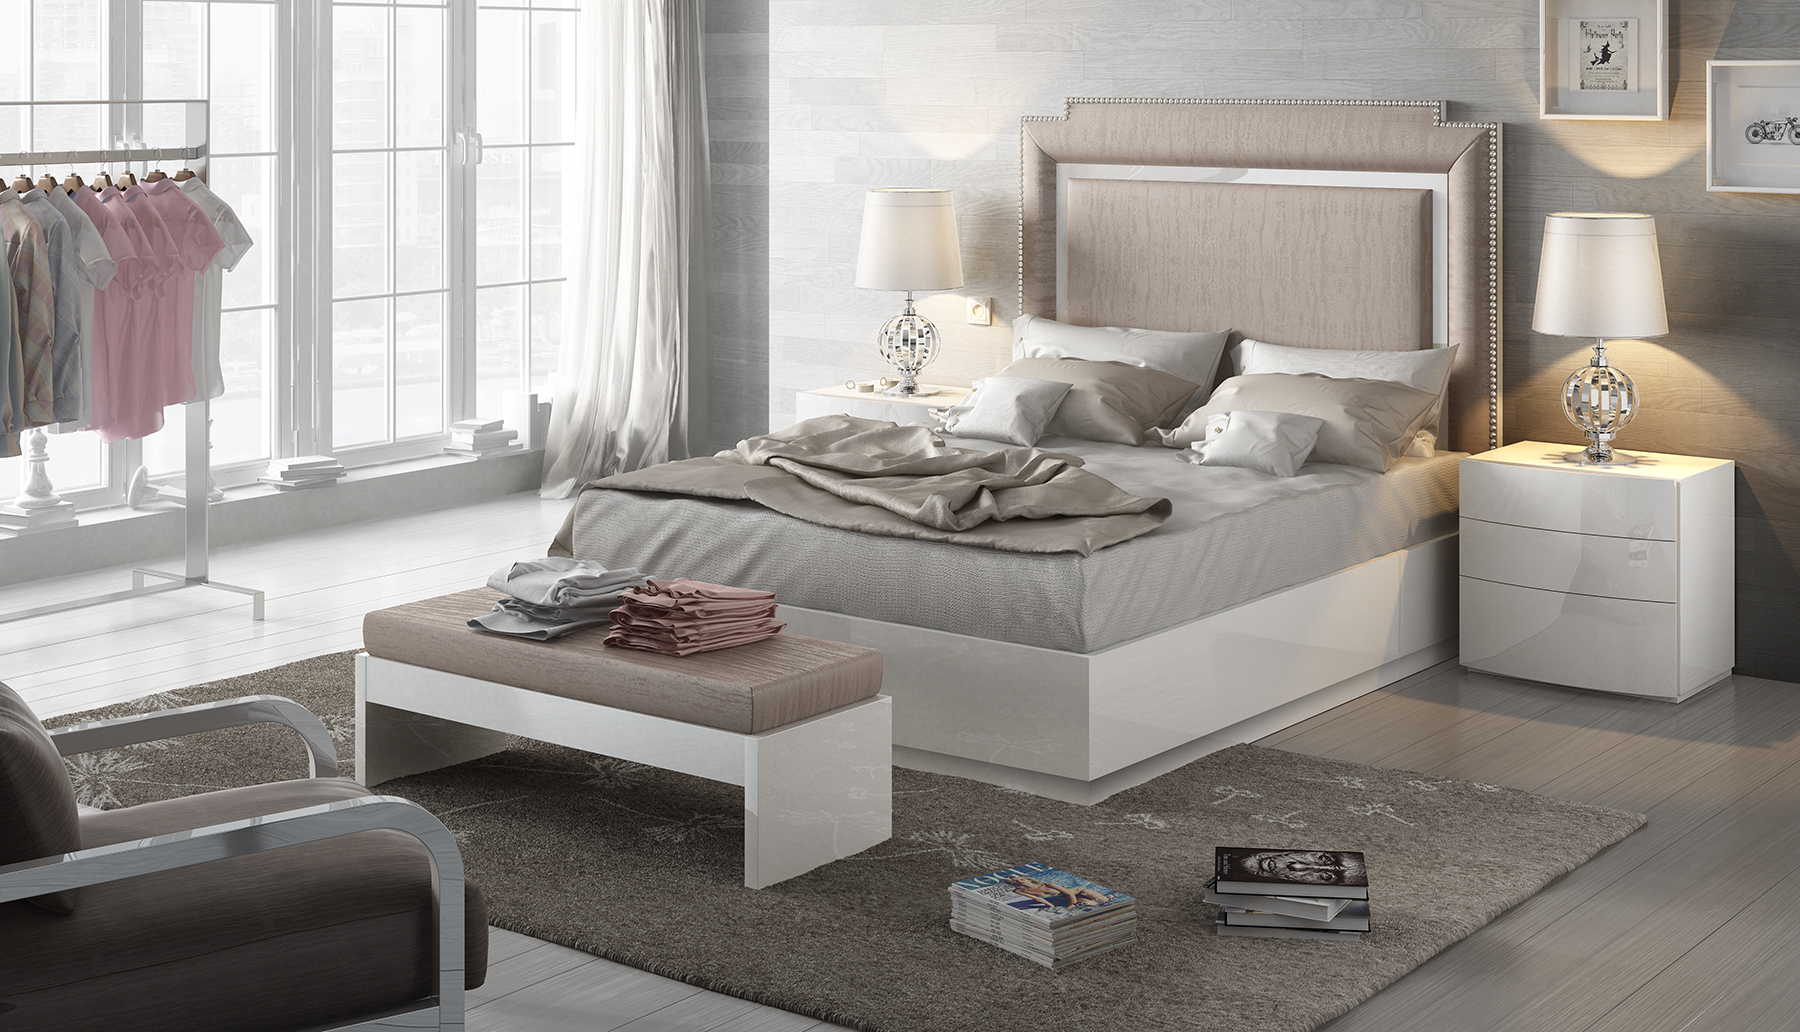 Brands Fenicia Modern Bedroom Sets, Spain Fenicia Composition 29 / comp 605